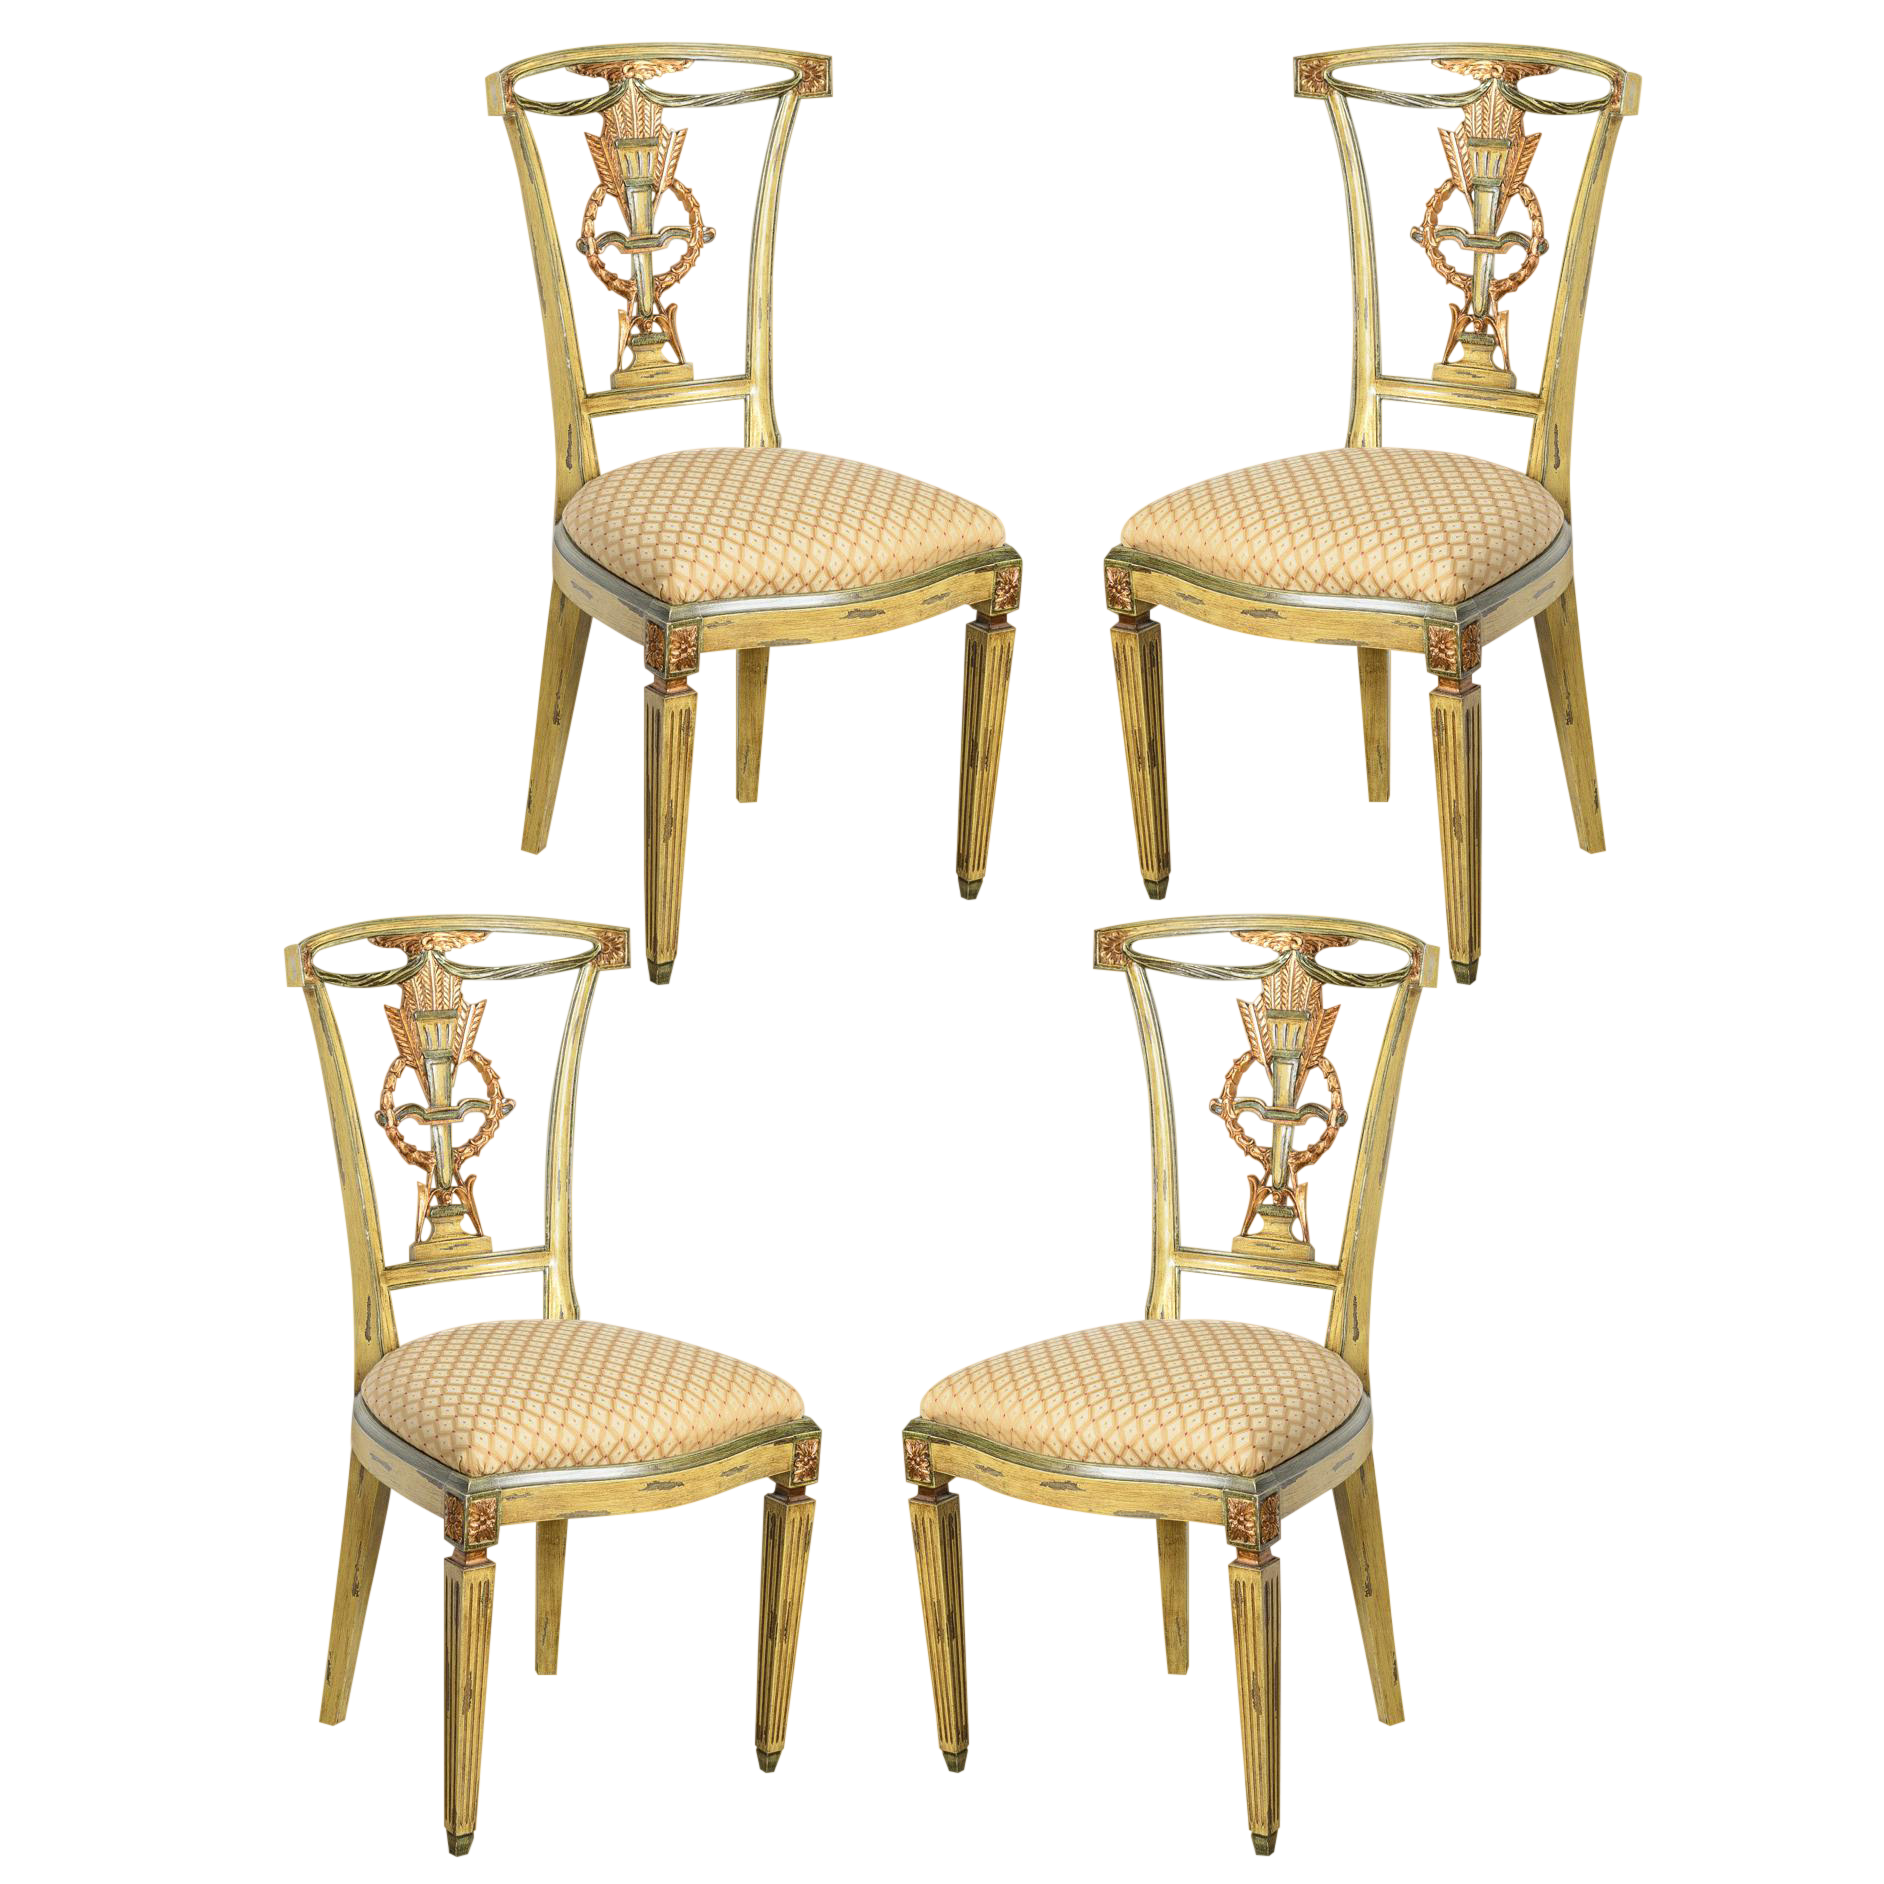 Delicieux Italian Louis XVI Style Painted And Gilt Wood Chairs, Set  Of 4